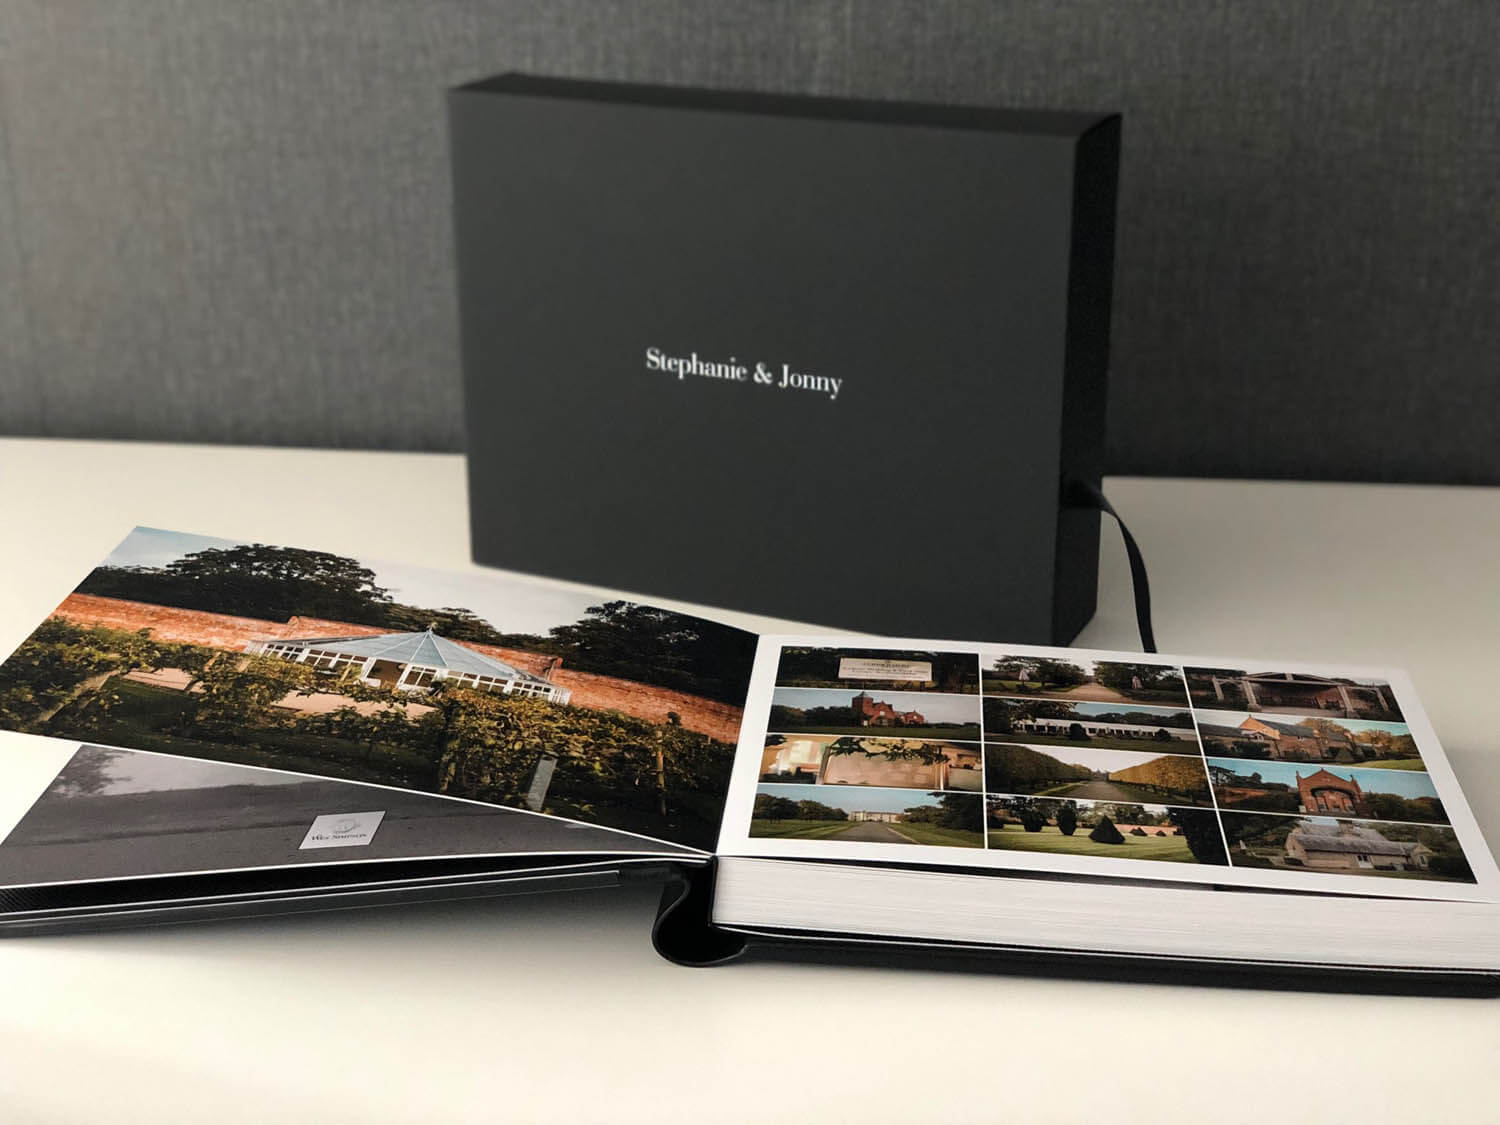 Storybook wedding album made in Italy with black box and white writing